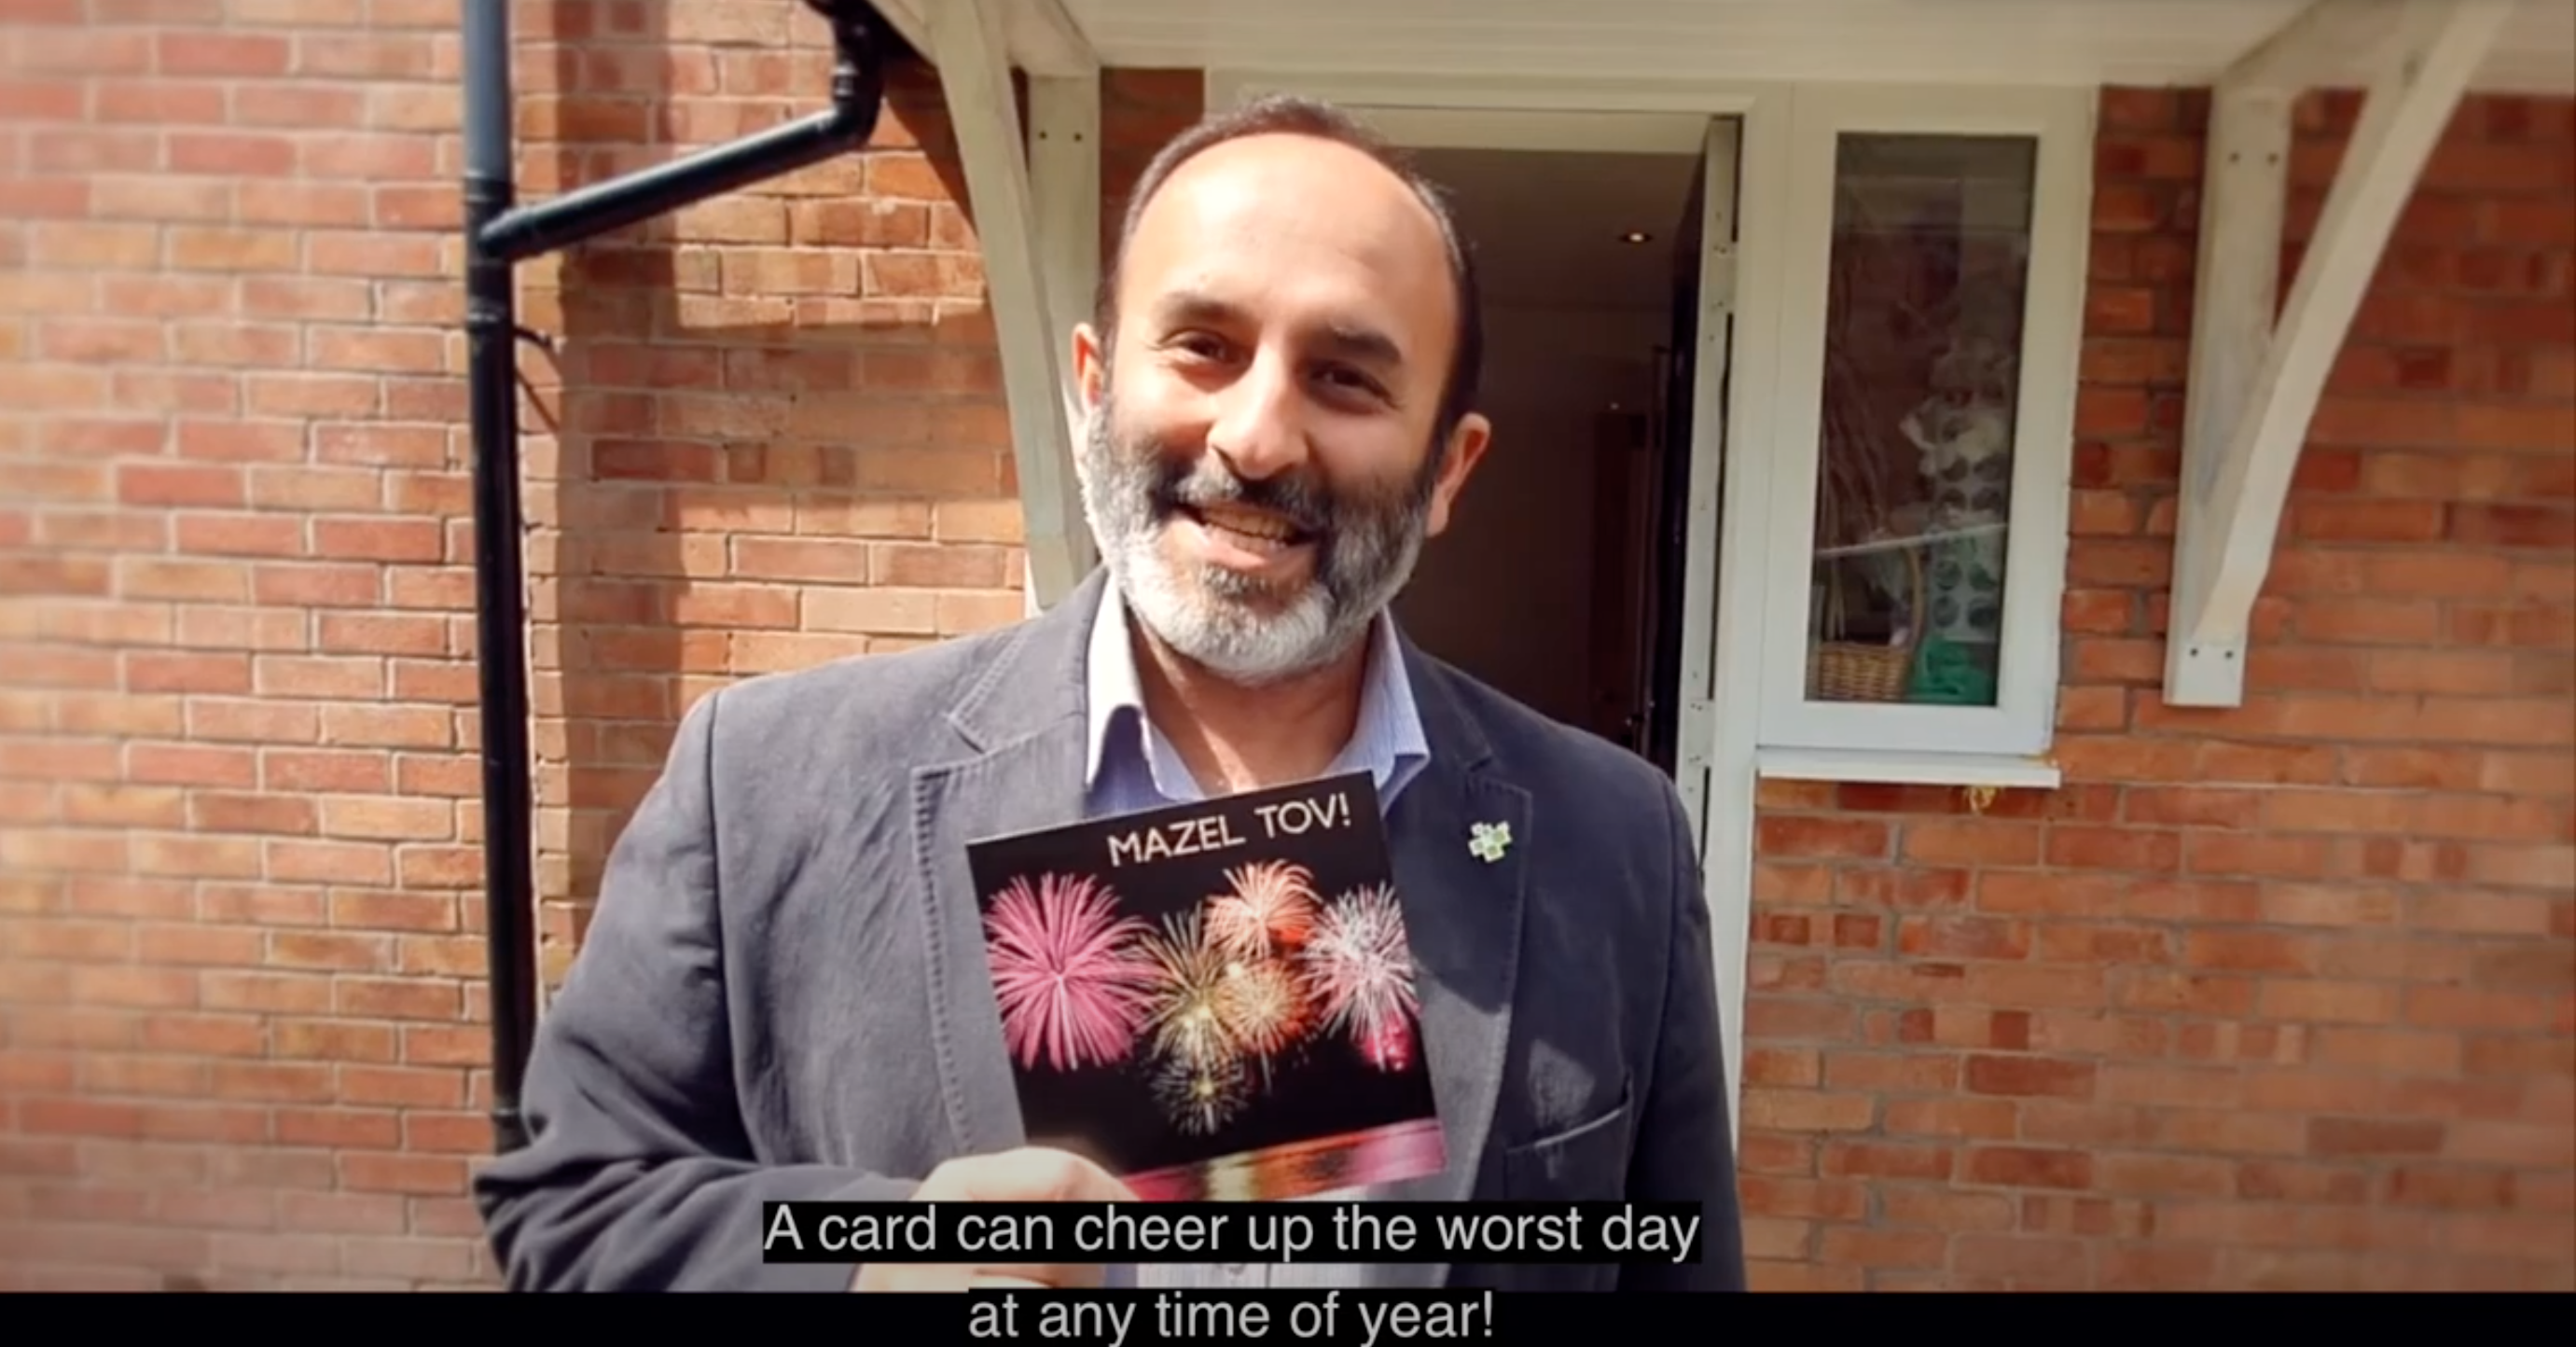 Above: Raj Arora, md of Davora making the point how receiving a card can lift the spirits even on the darkest of days.